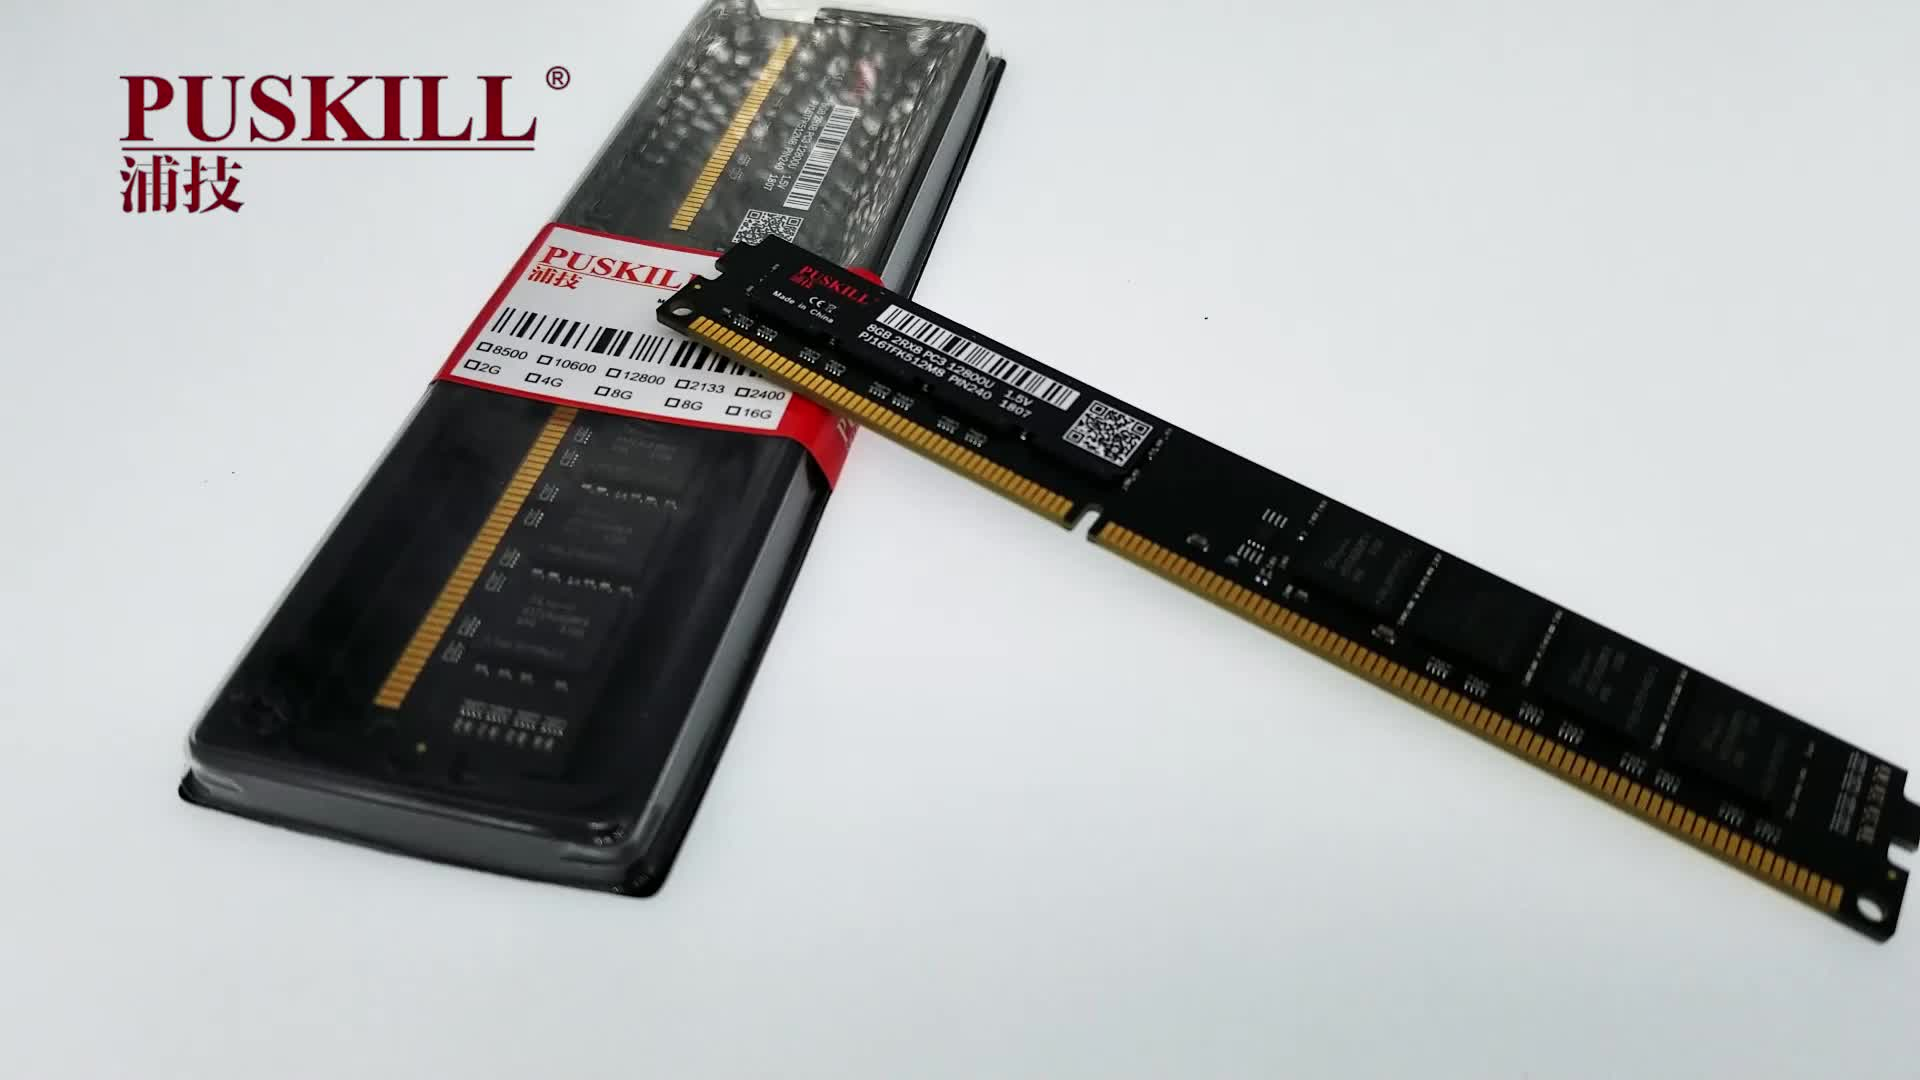 Compatible with all 8gb ddr3 1600mhz memoria ram